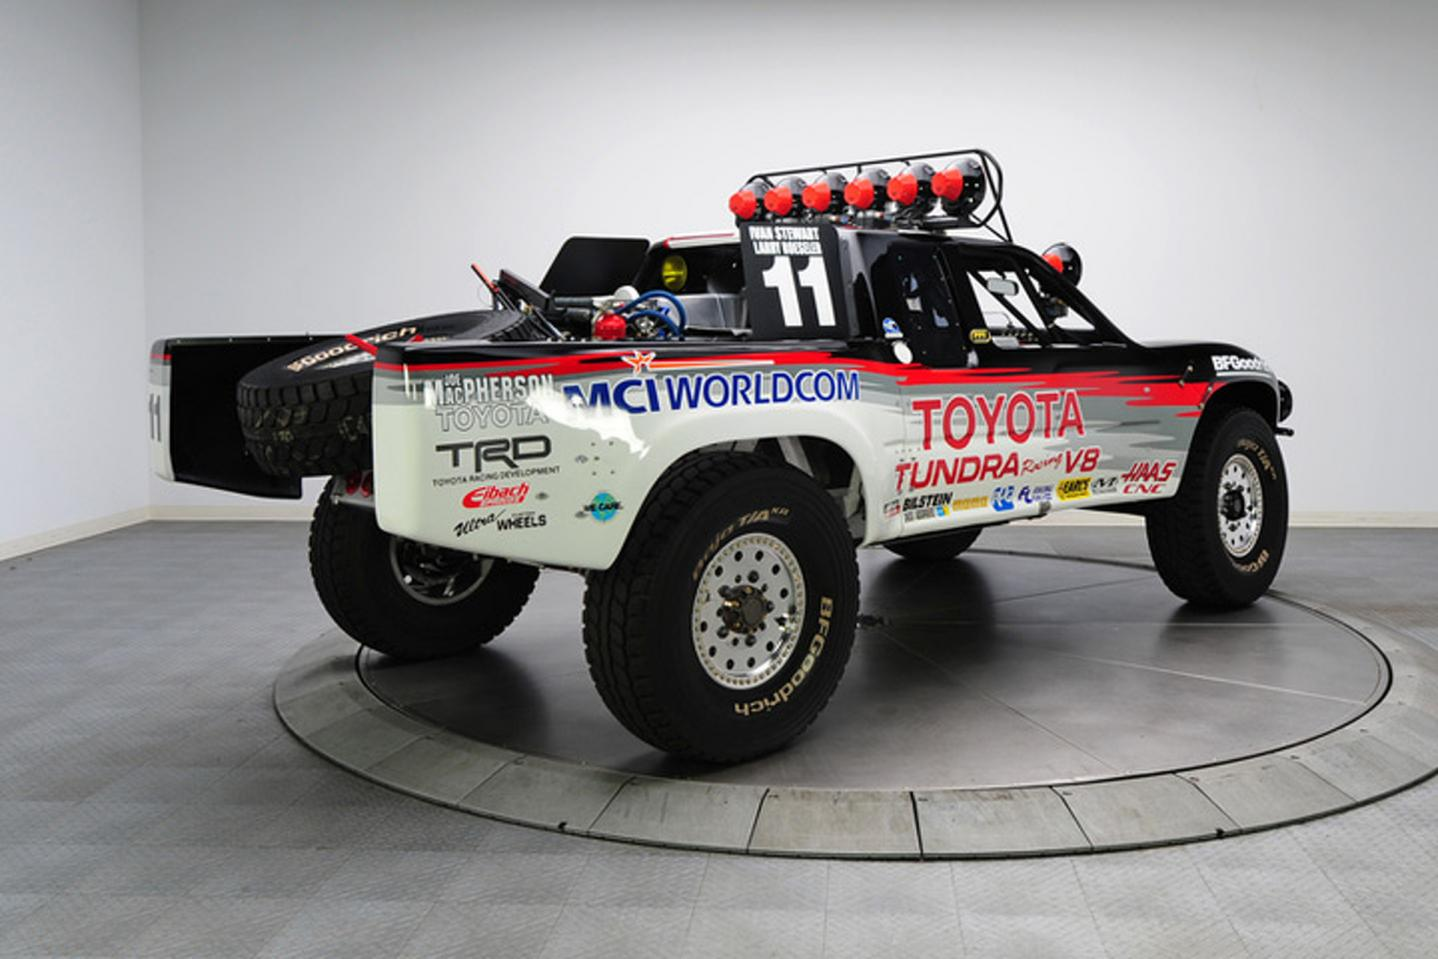 Can a 5th gen Limited be a capable vehicle?-ivan-ironman-stewarts-baja-1000-truck-can-yours-jpg